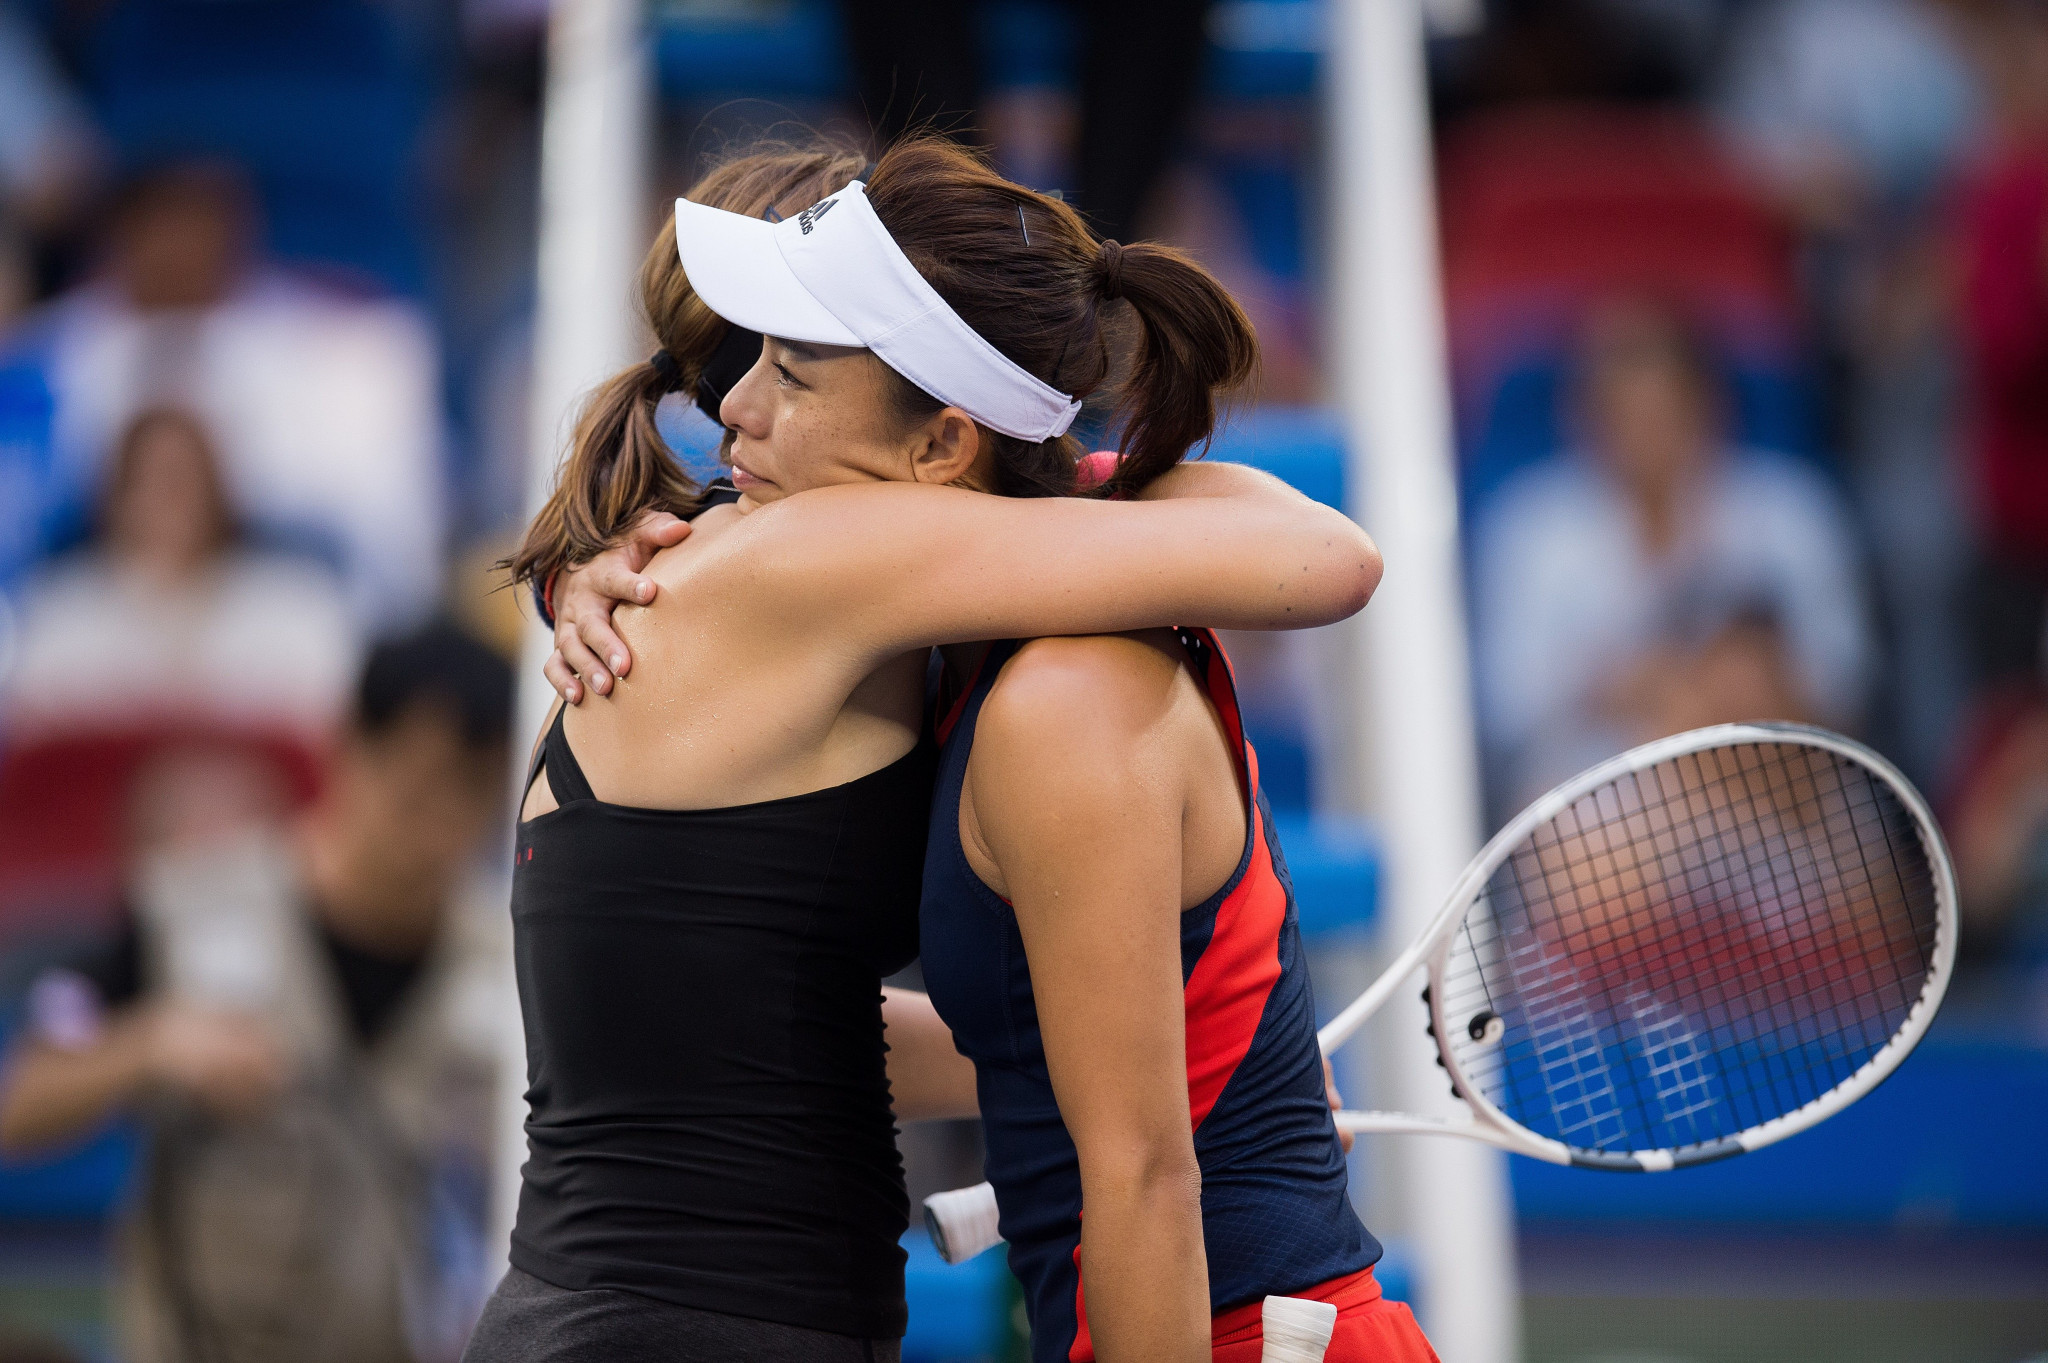 Wang Qiang, right, is hugged by Annet Kontaveit after retiring because of a thigh injury ©Getty Images